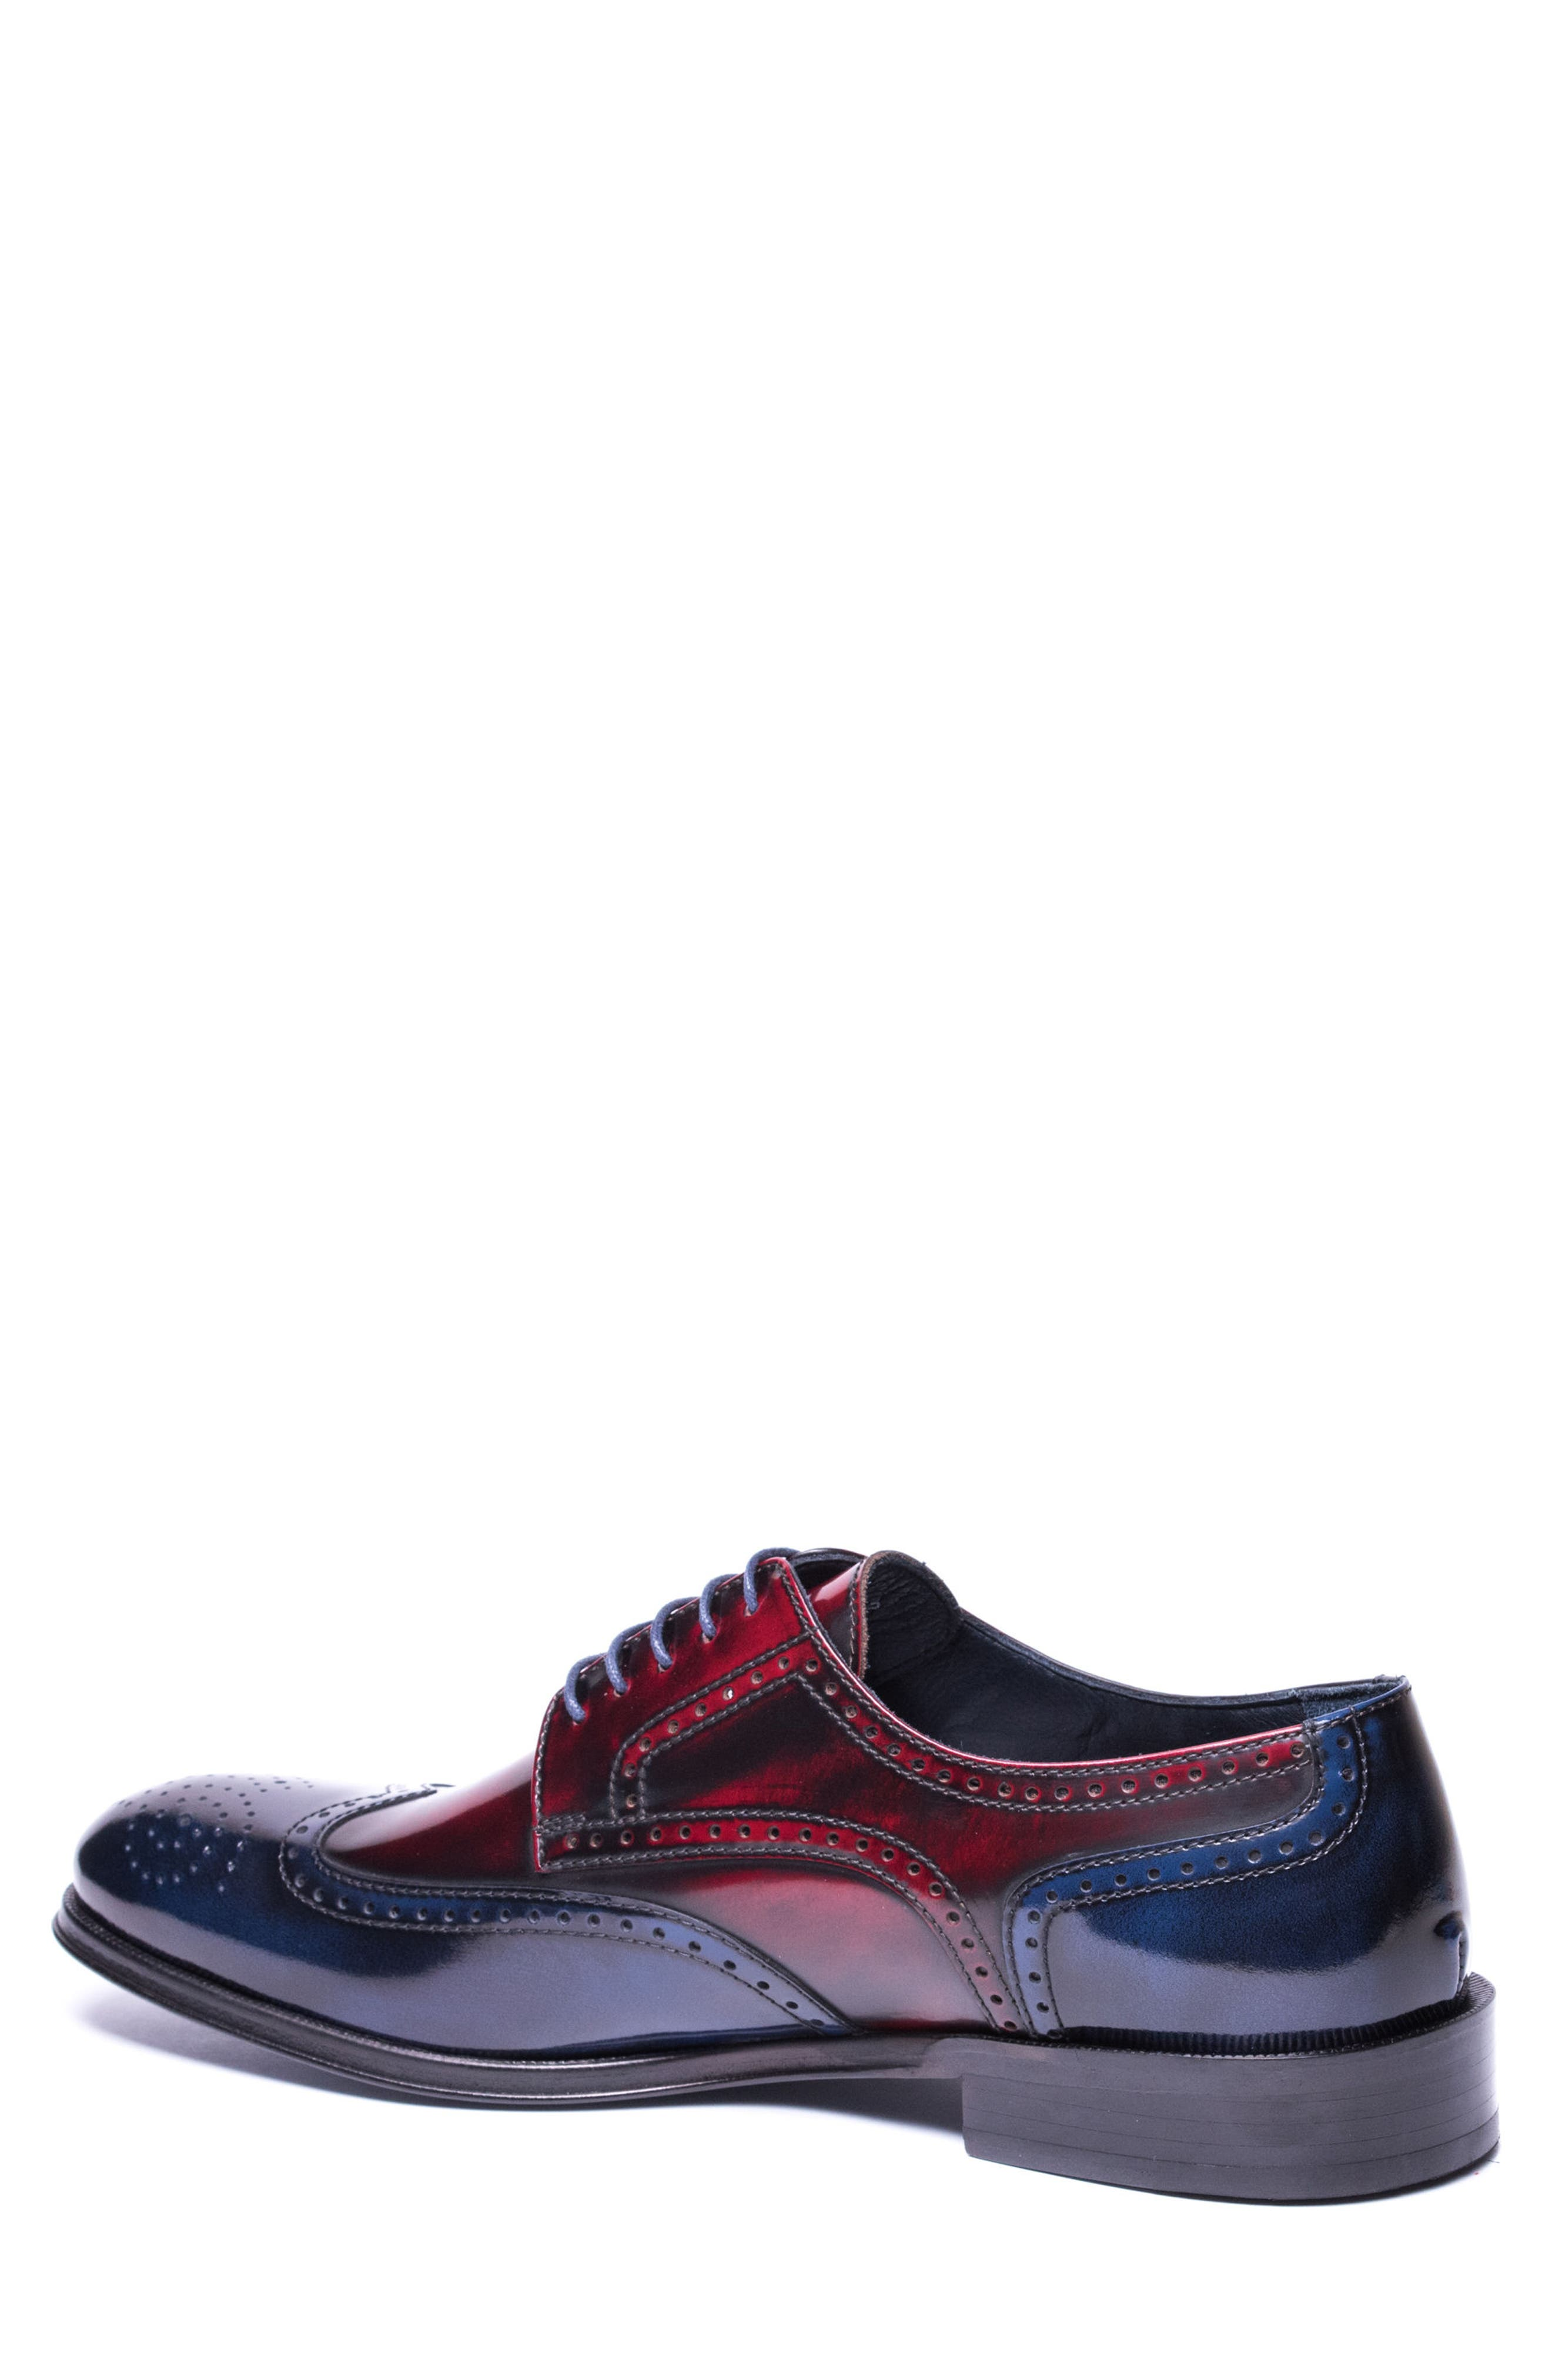 Bryce Wingtip Derby,                             Alternate thumbnail 2, color,                             RED/ BLUE LEATHER